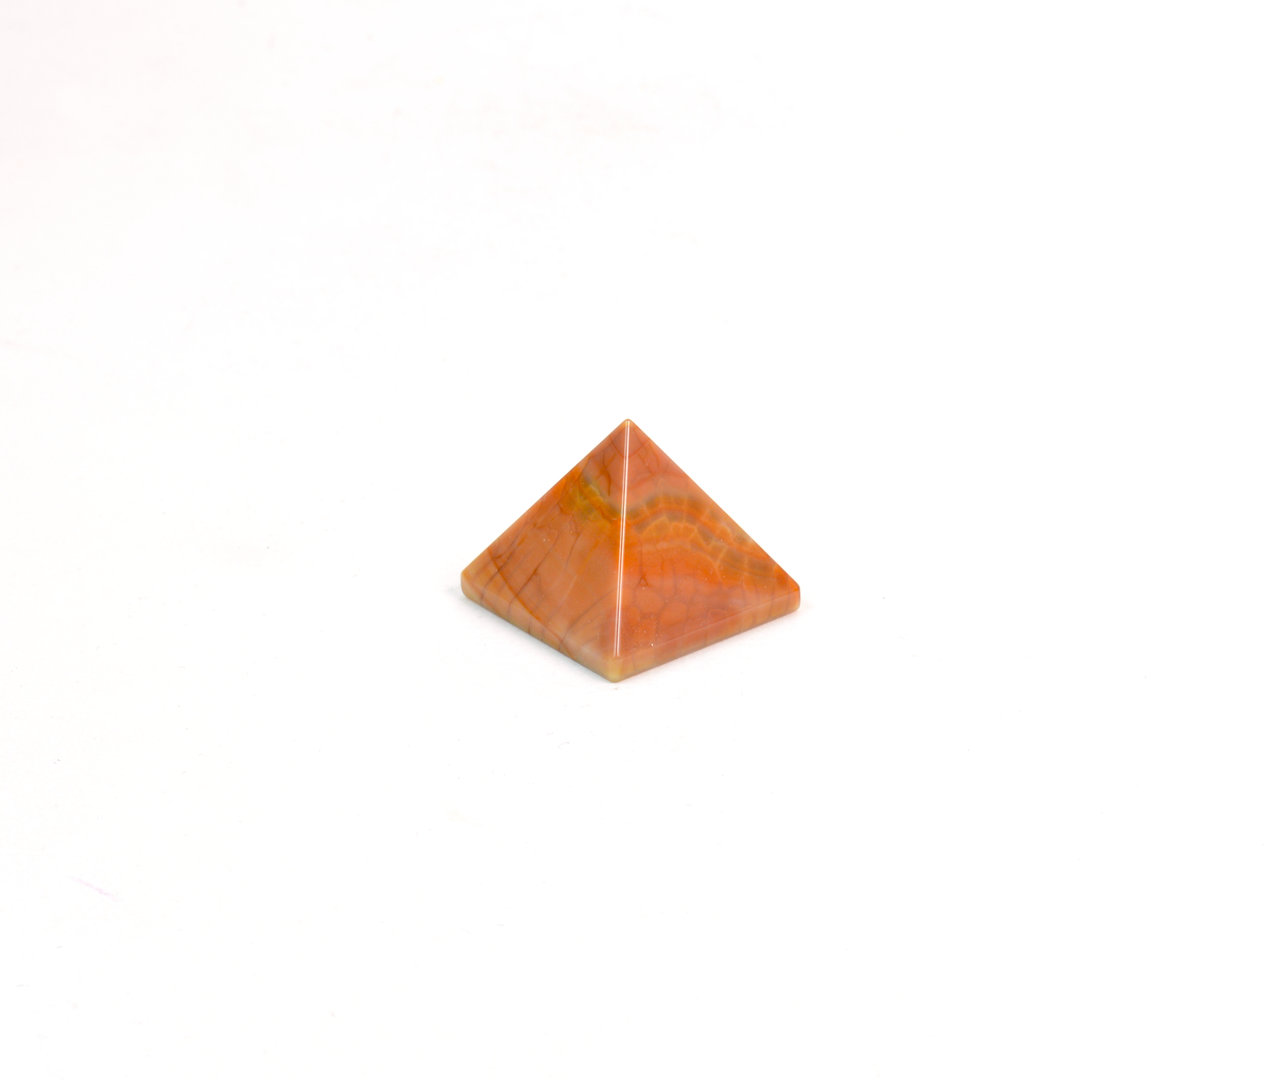 Piramide in Agata di Fuoco (base: 2,5x2,5 cm circa).Soprammobile,Idea Regalo